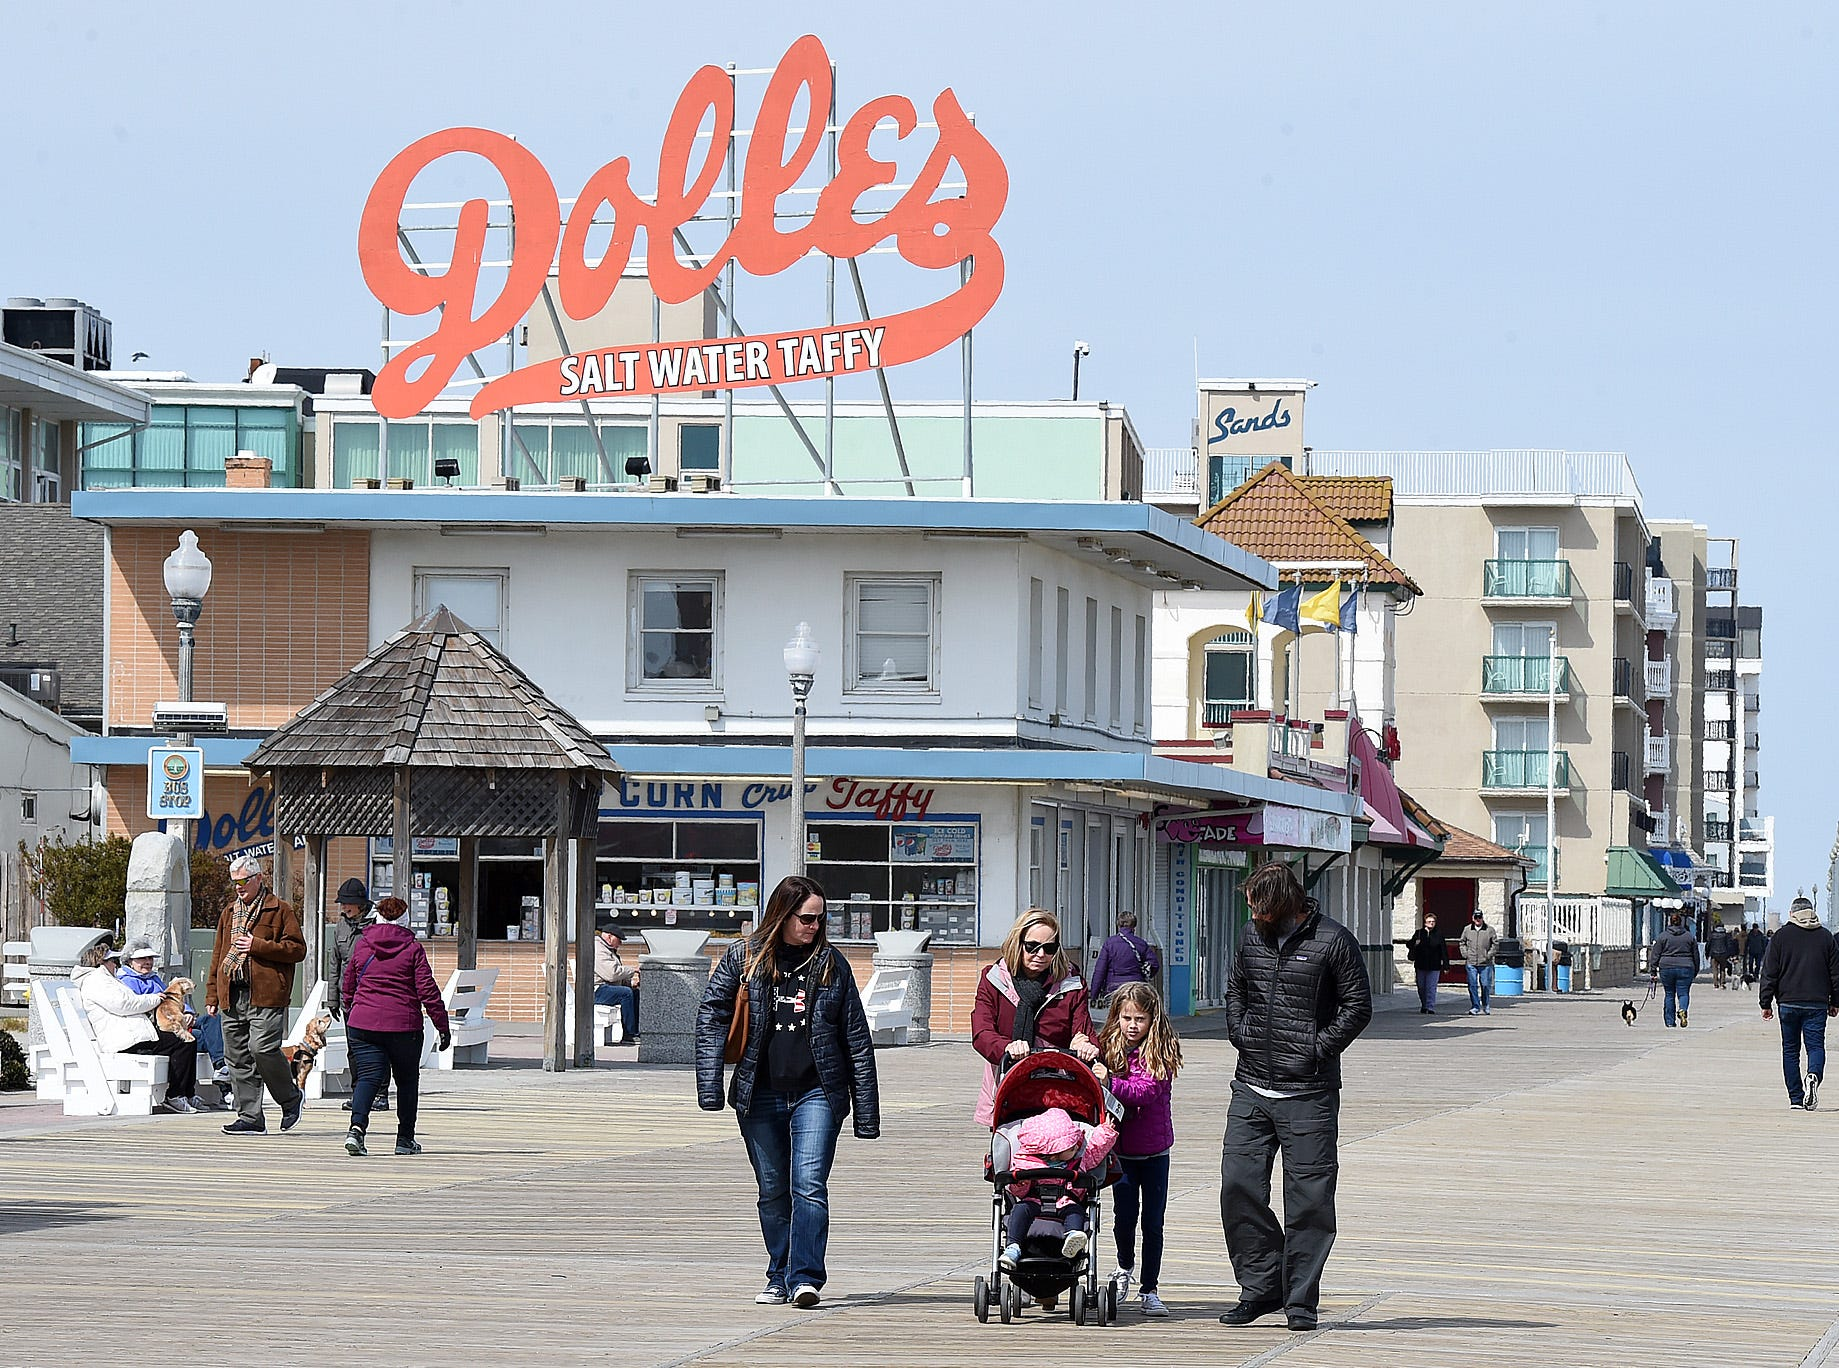 The first day of spring had cooler temperatures at Rehoboth Beach Wednesday, but some did venture out to enjoy the outdoors.